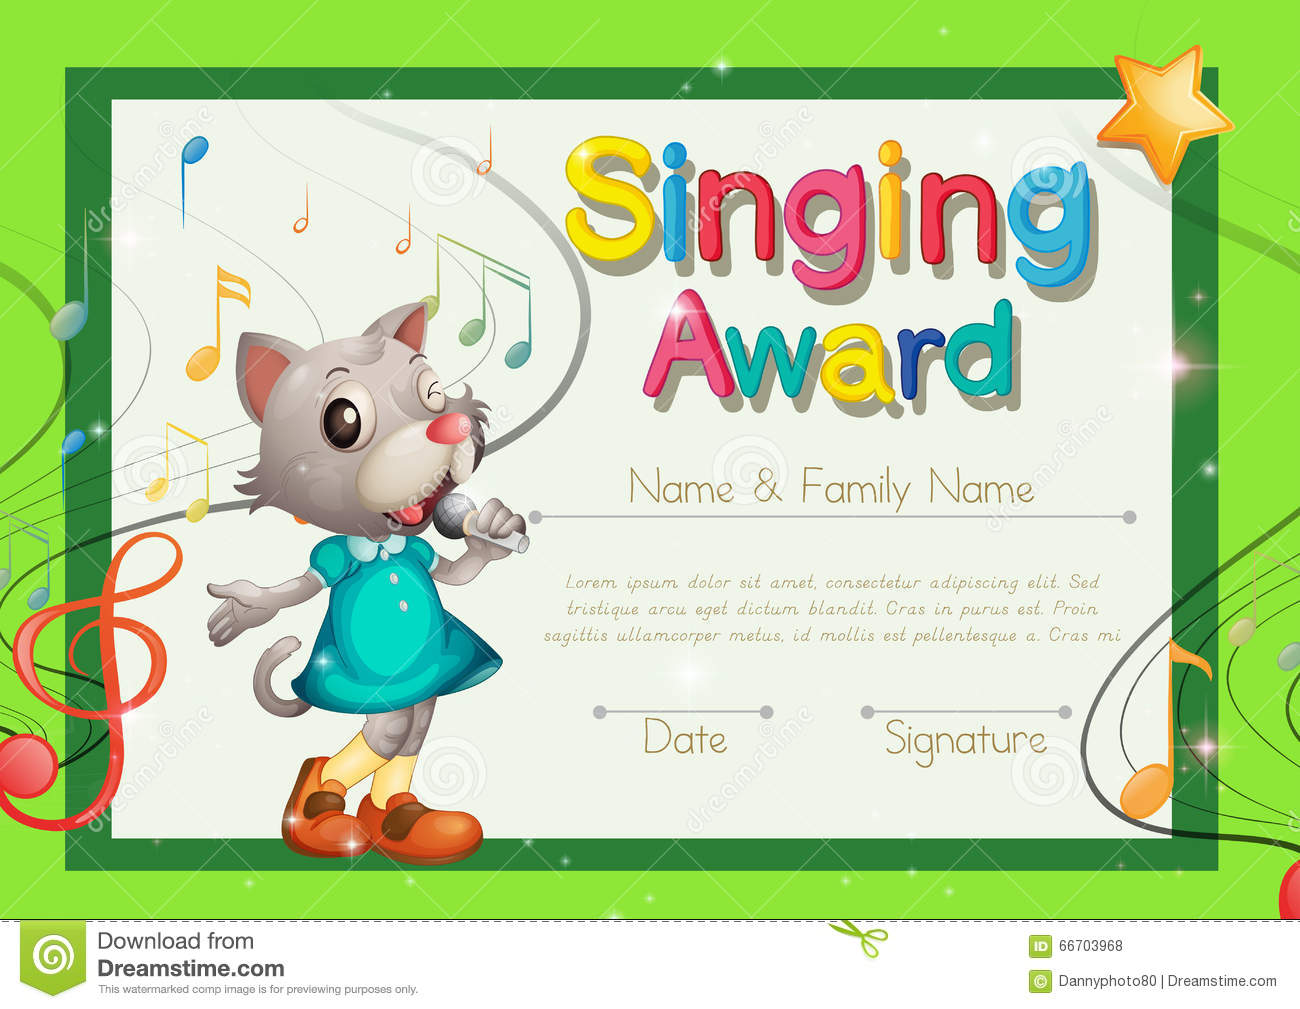 Singing Award Certificate Template Stock Vector - Image: 66703968